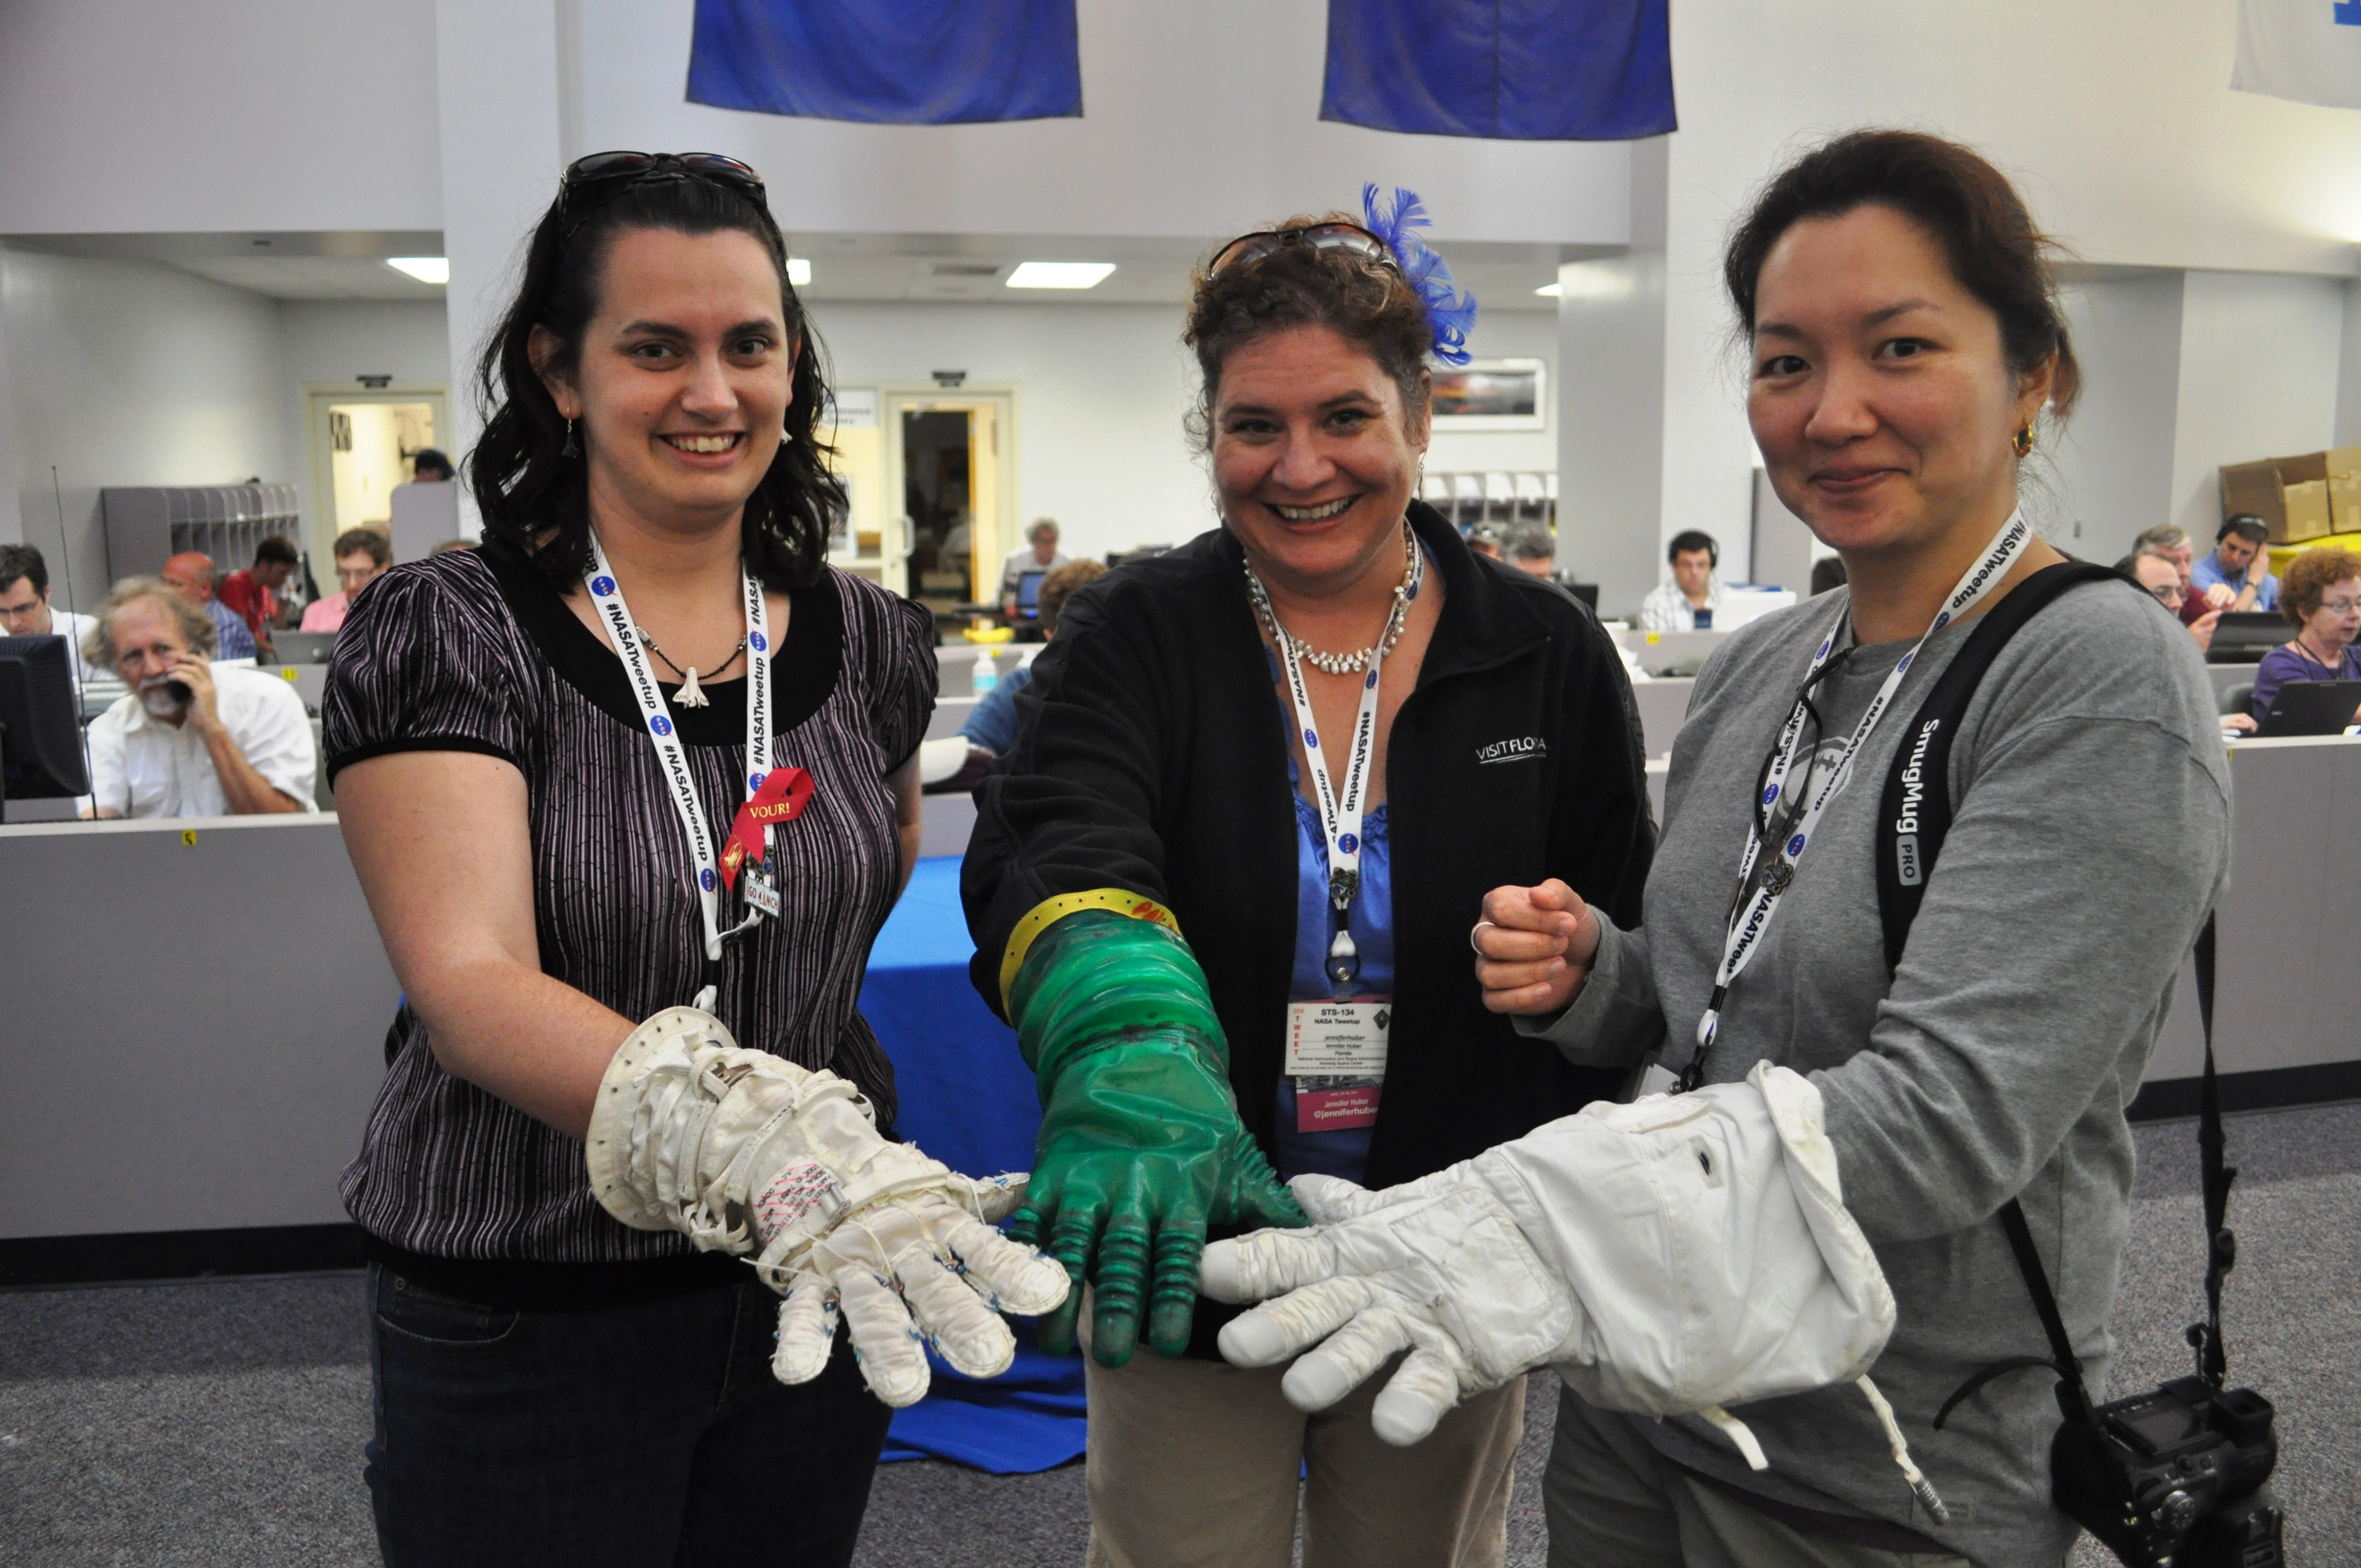 Me (Center) with Jillian Davis (L) and Linda Seid Frembes (R) NASA Tweetup for STS-134 Final Launch of Space Shuttle Endeavour, May 16, 2011